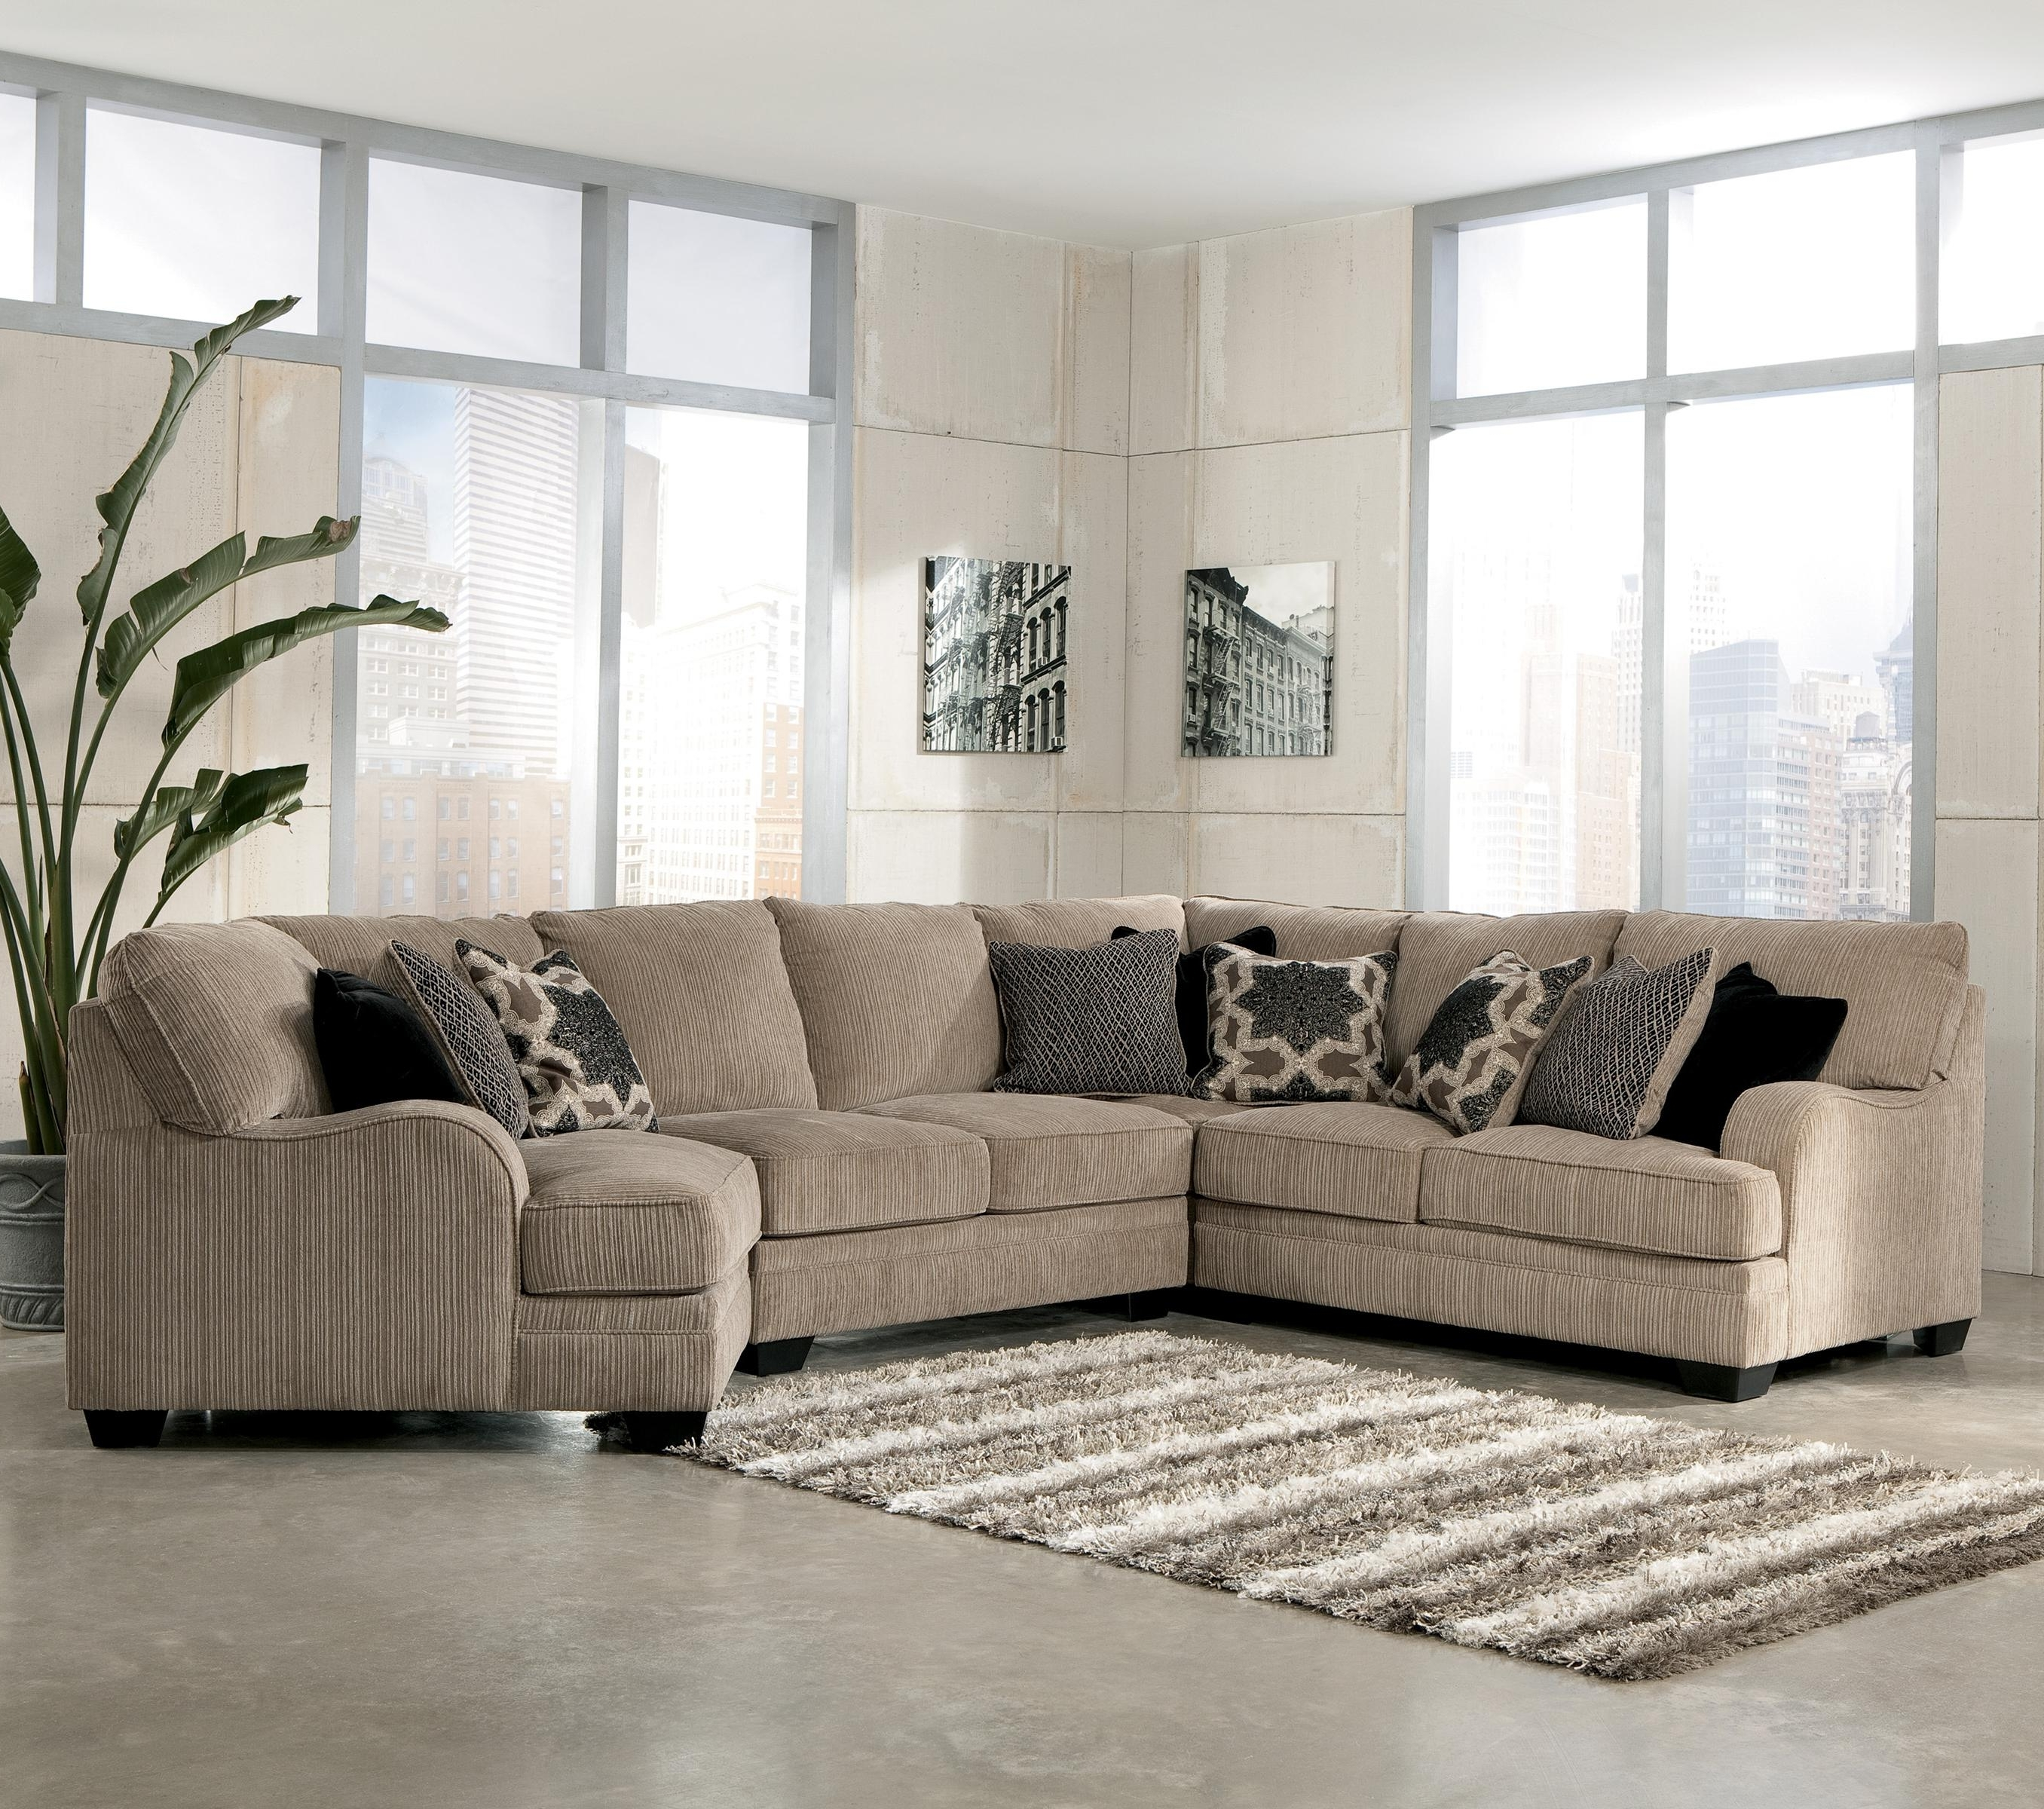 Jackson Ms Sectional Sofas Pertaining To Well Known Signature Designashley Katisha – Platinum 4 Piece Sectional (Gallery 19 of 20)